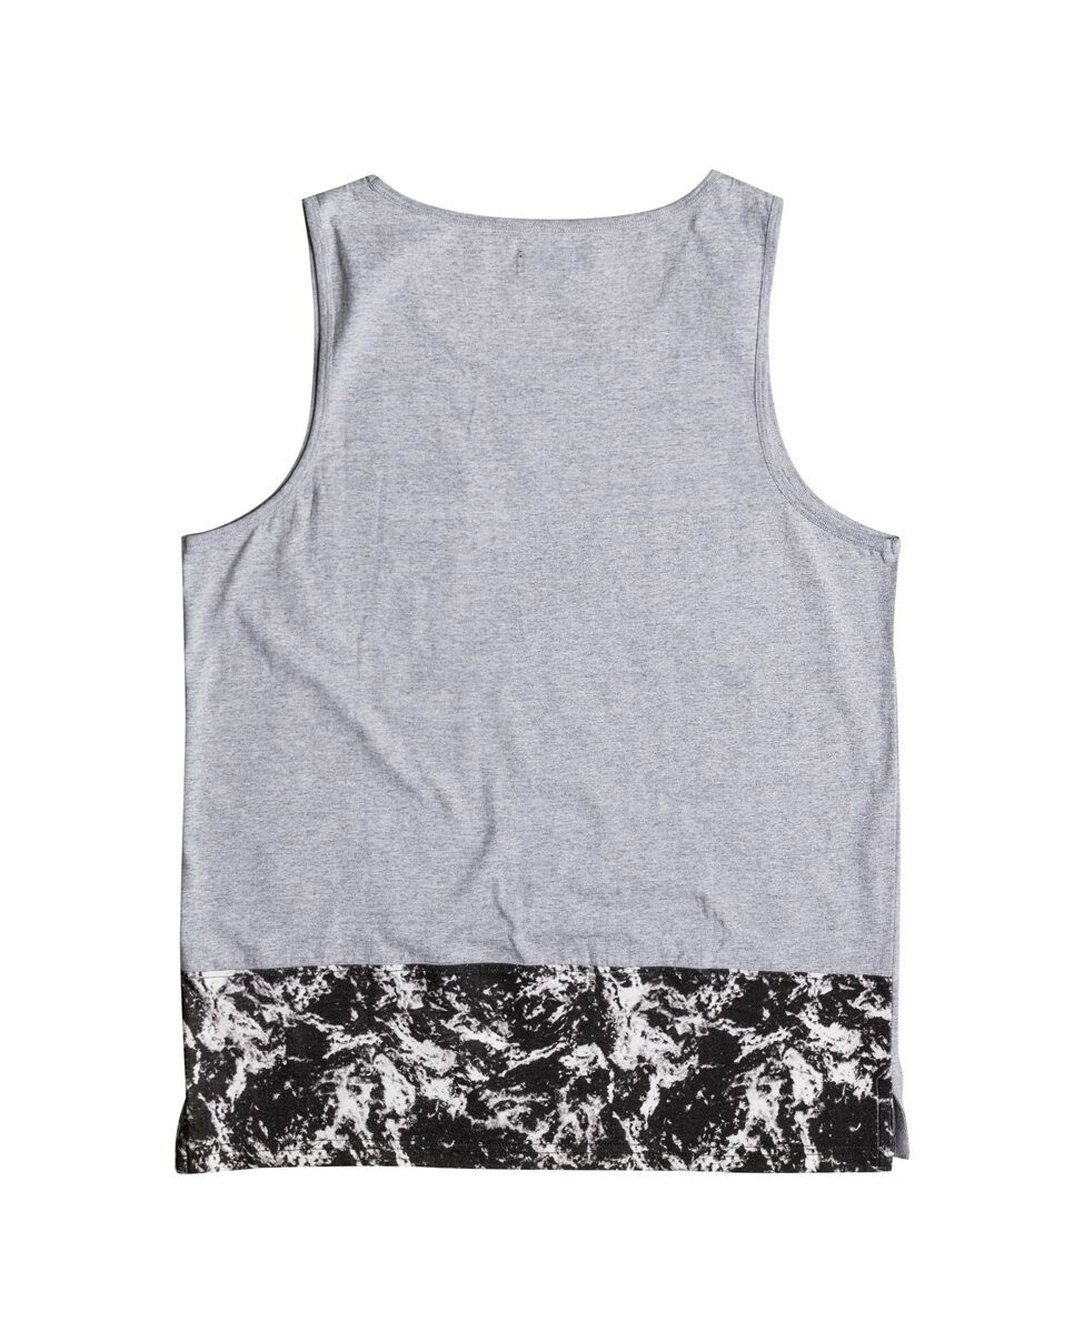 DC SHOES TANK OWENSBORO